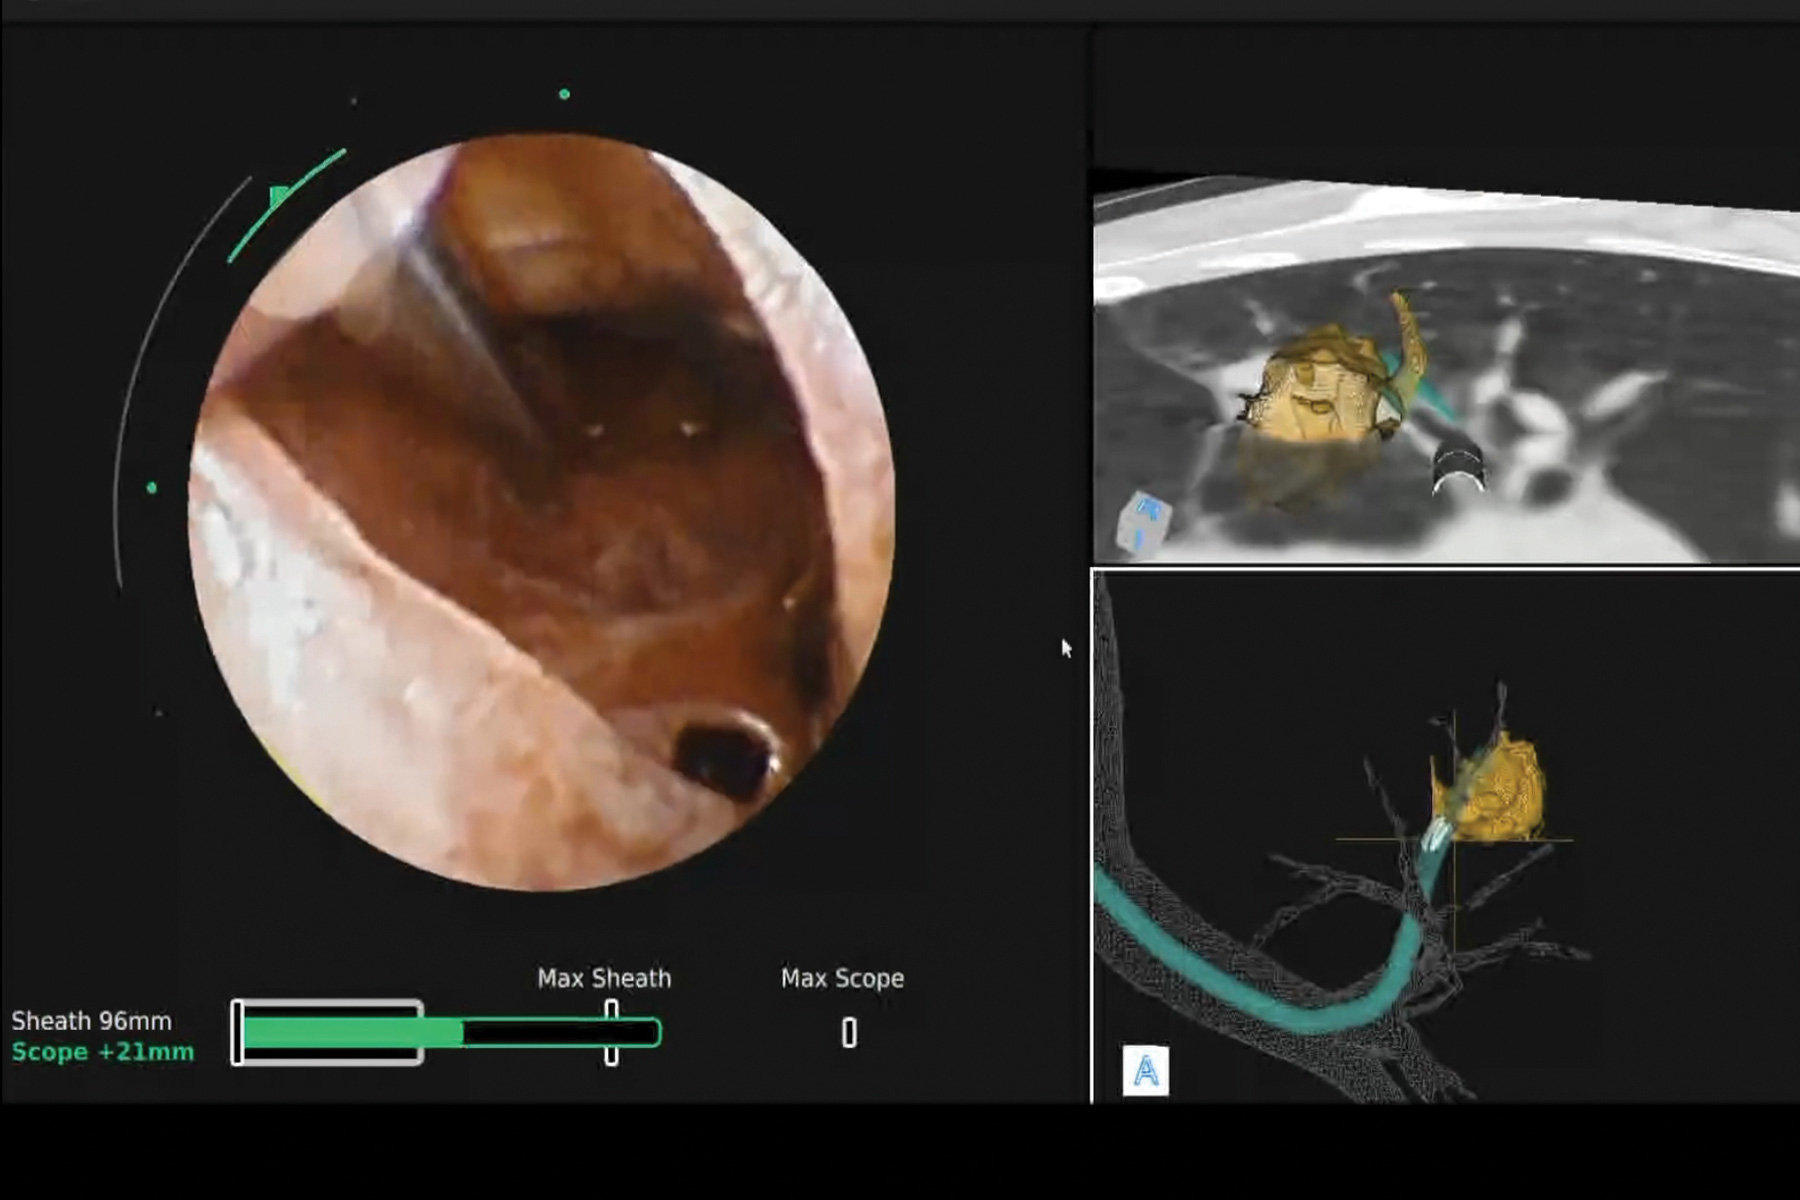 Fig 1. Biopsy needle (upper left) slides directly into a suspicious nodule. Biopsy obtained after using continuous vision and robotic tip control to create a path to the nodule and transform an eccentric REBUS image into a concentric pattern.